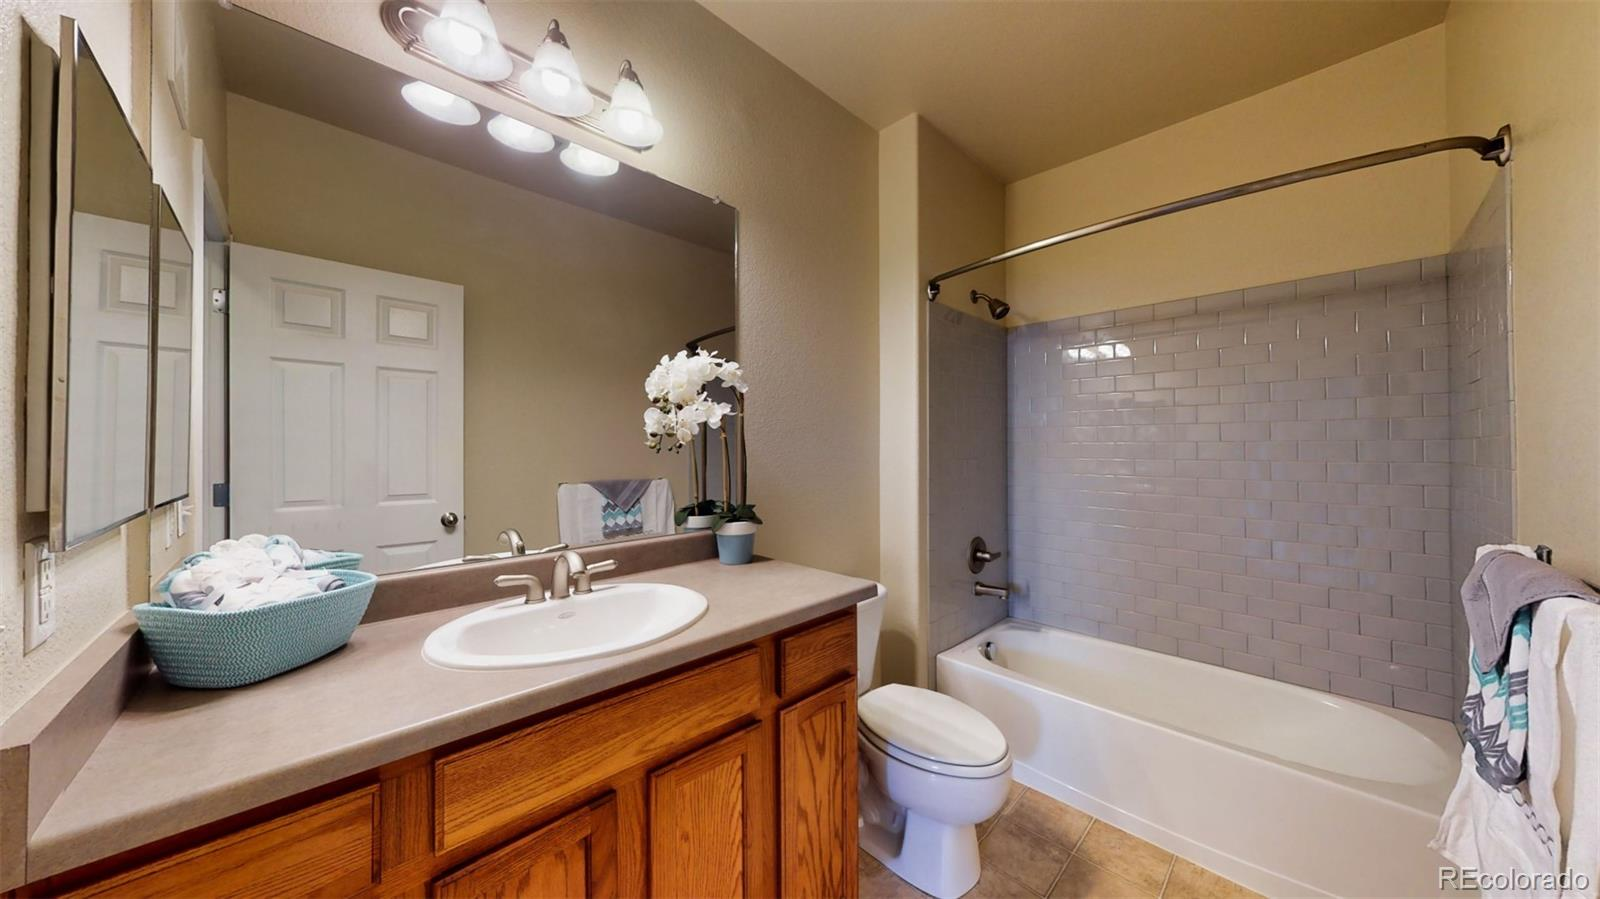 MLS# 3562922 - 18 - 8123 W 51st Place #202, Arvada, CO 80002